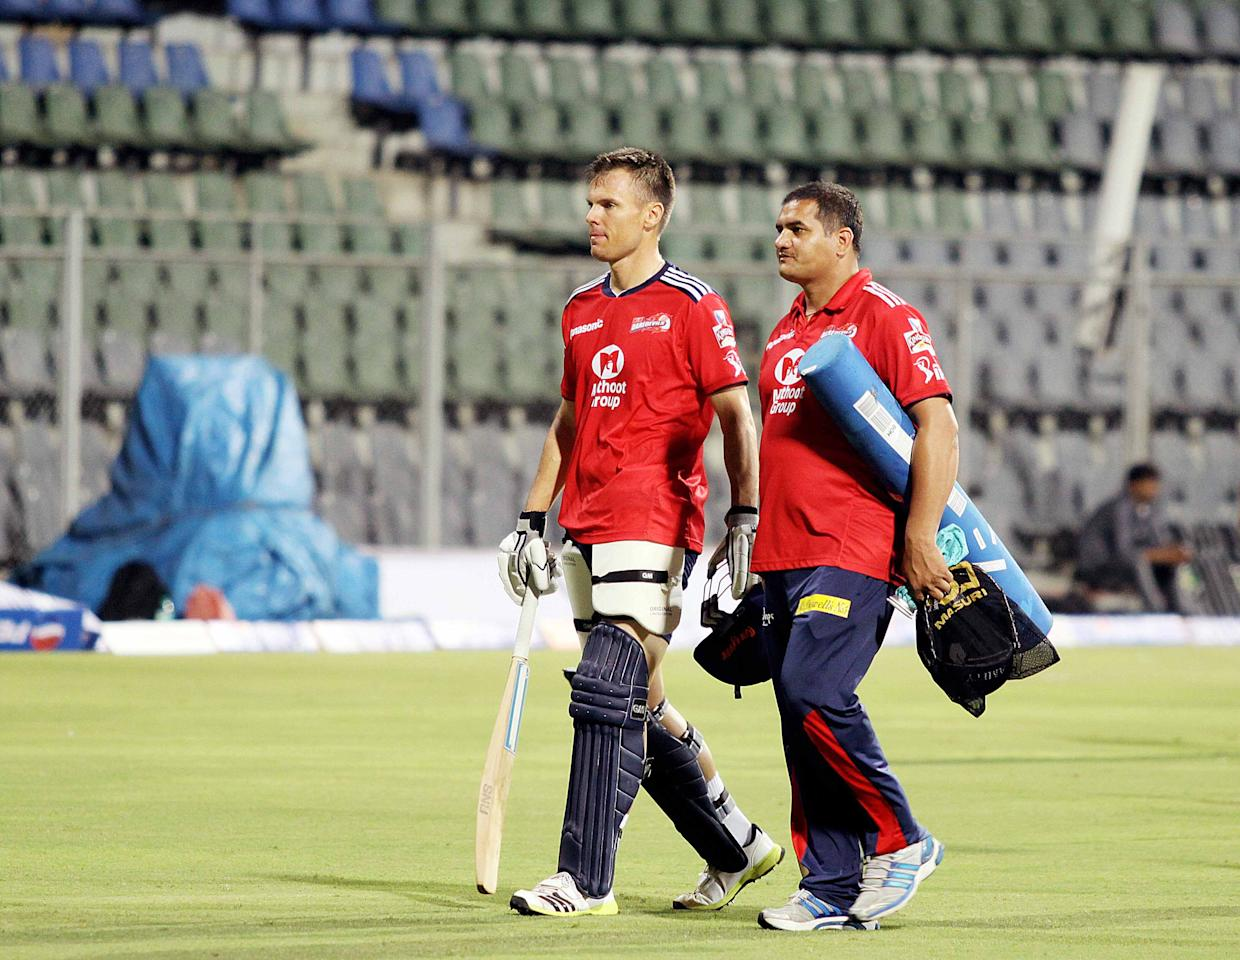 Delhi Daredevils player Johan Botha during a nets session at the Wankhede Stadium in Mumbai on 8 April 2013. (Yogen Shah)